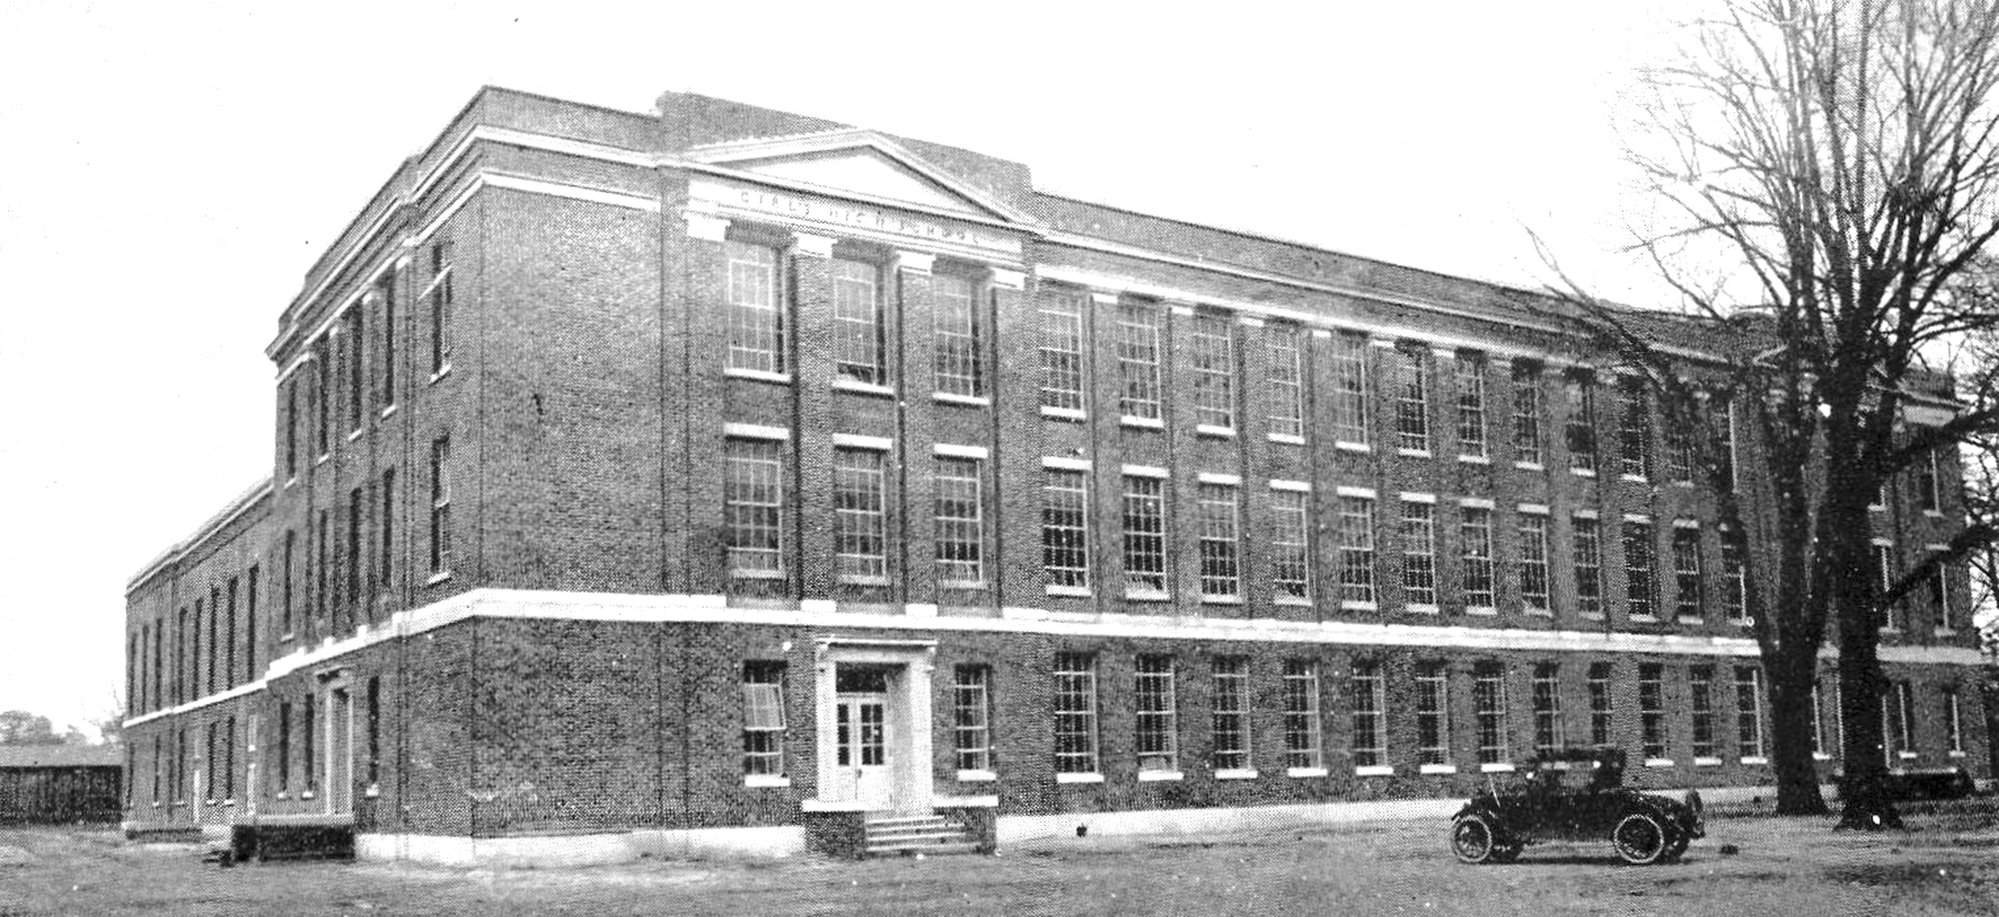 Girls' High School was started in the 1870s in Sumter as a public school.